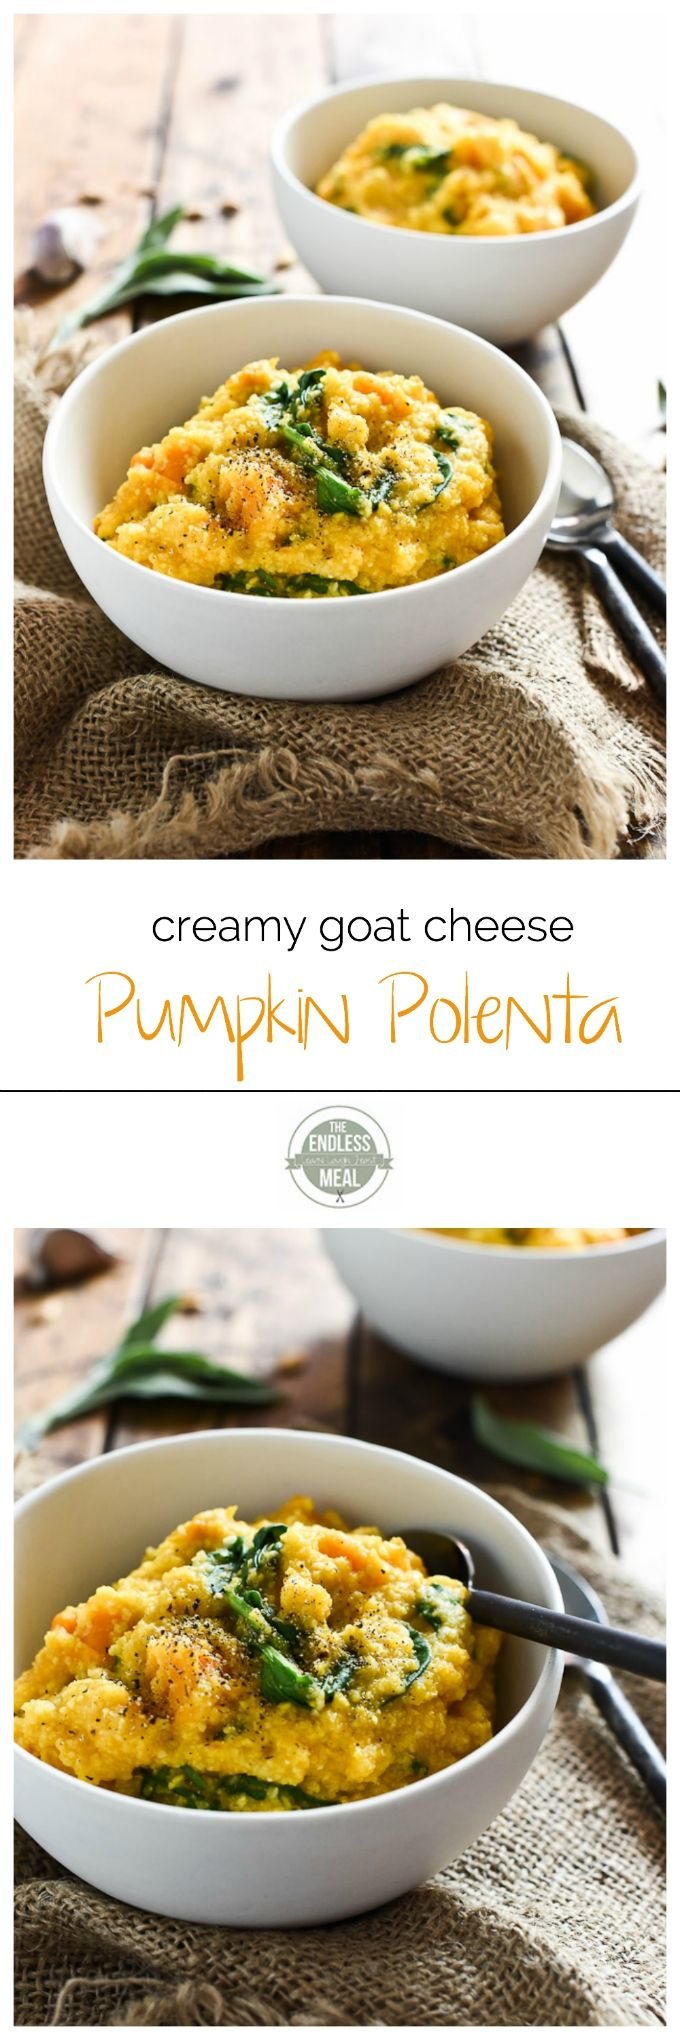 Creamy Goat Cheese and Pumpkin Polenta | this quick and easy to make fall dinner recipe is the perfect way to warm up on a chilly night. | theendlessmeal.com